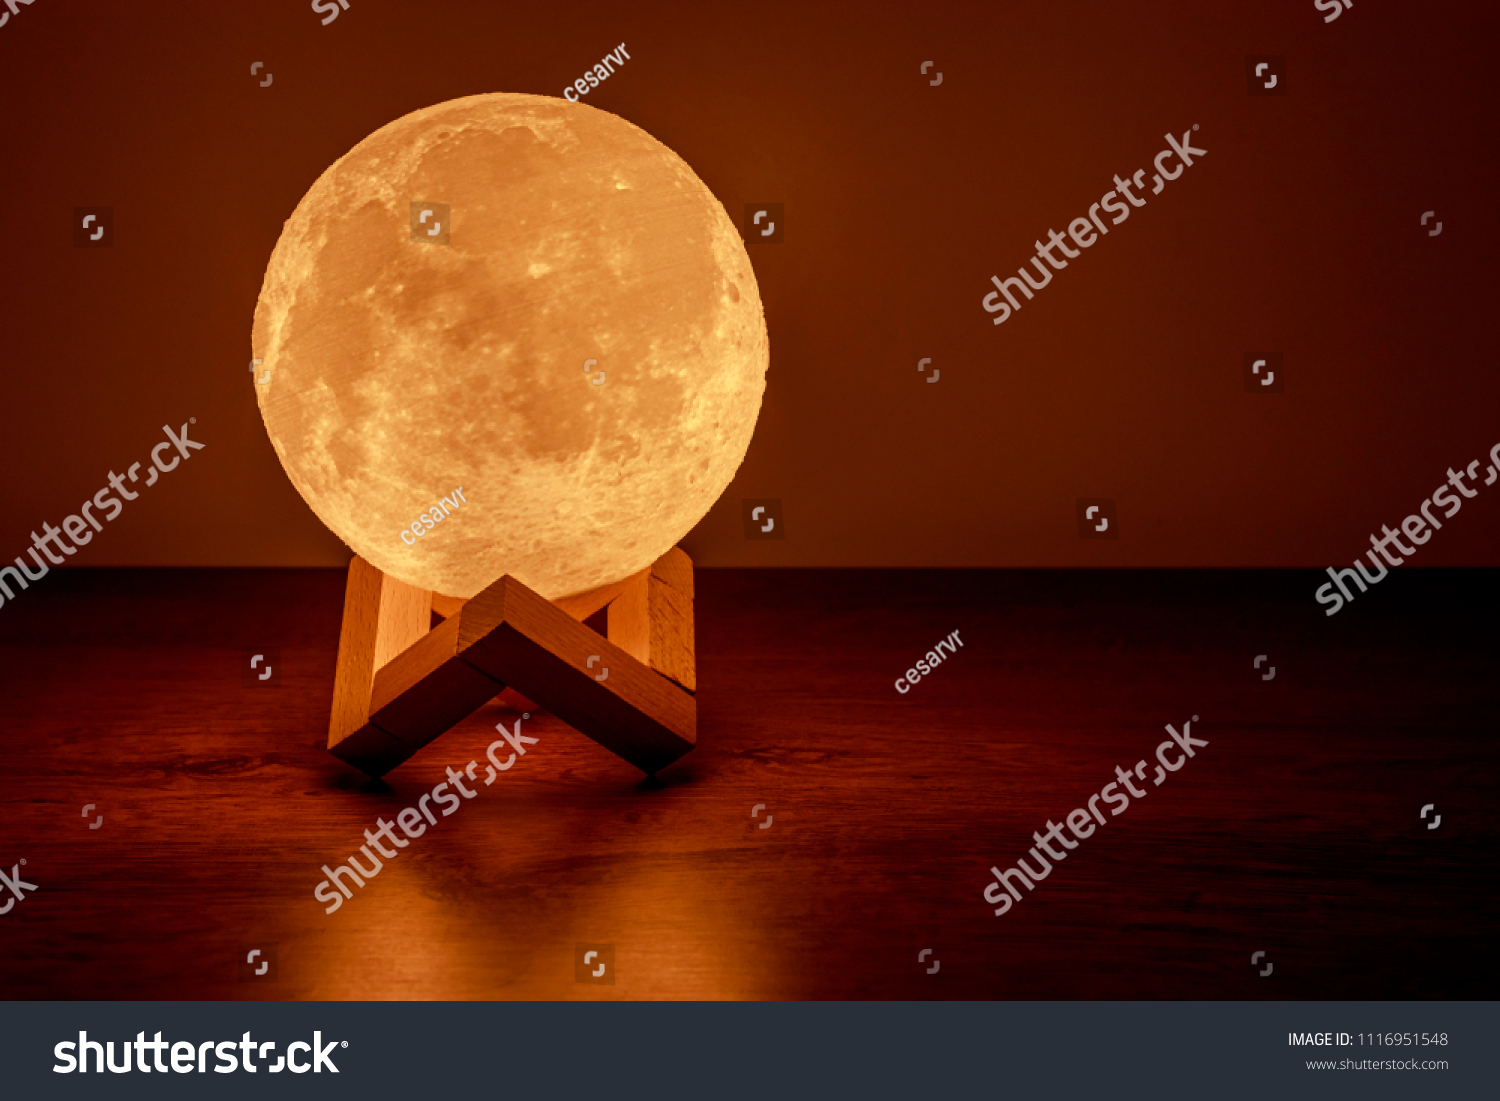 Moon lamp on the table #1116951548